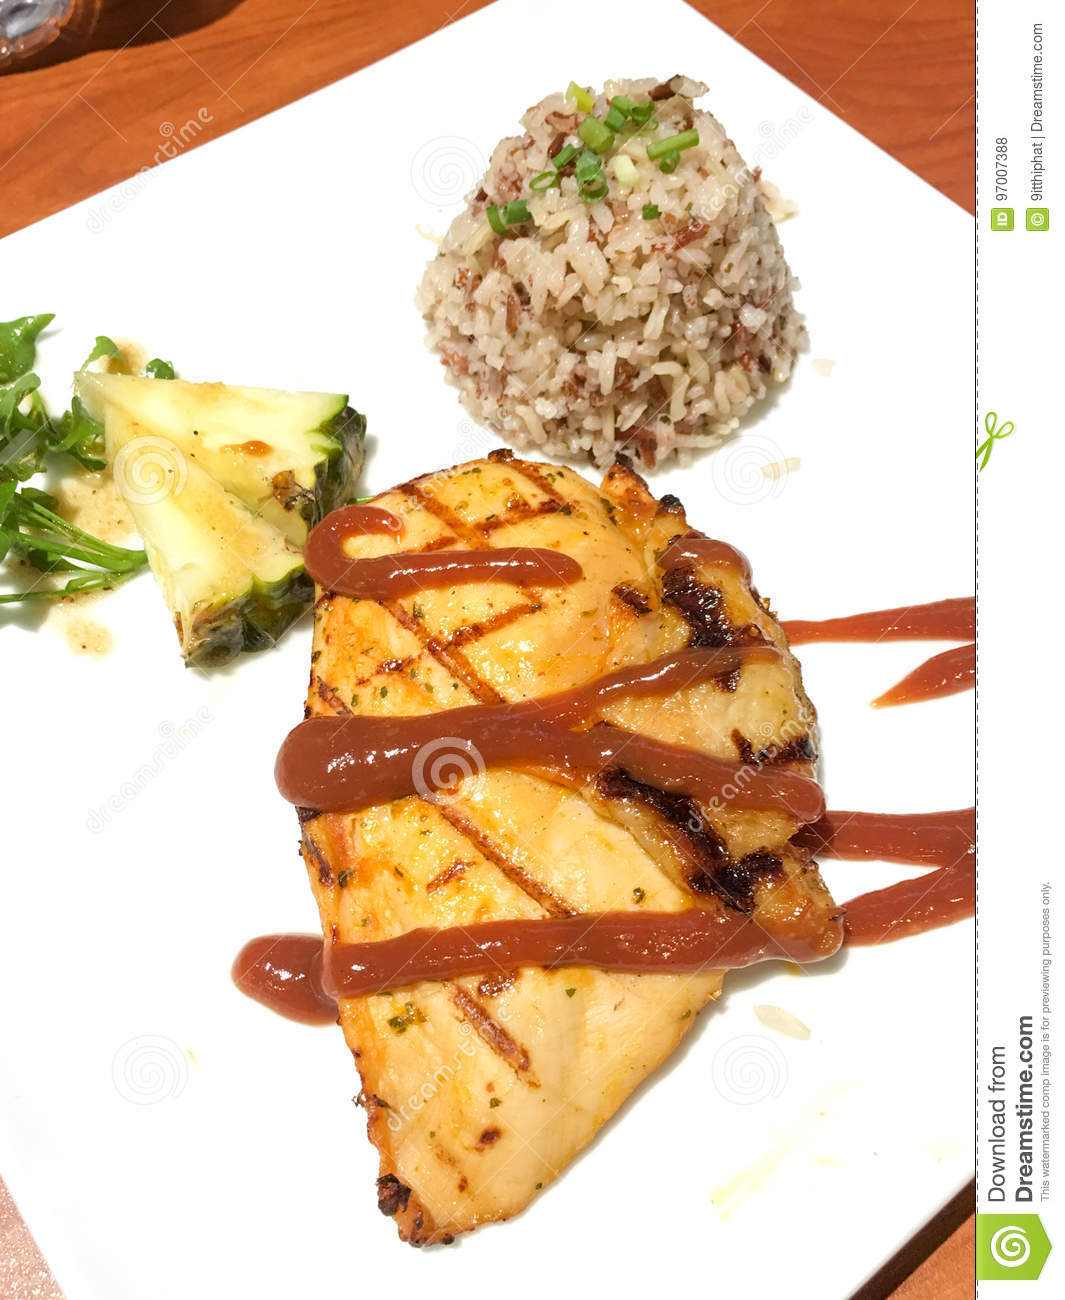 Roasted Chicken With Sauce Served With Brown Rice And Fruit Salad Stock Photo Image Of Fork Foreground 97007388